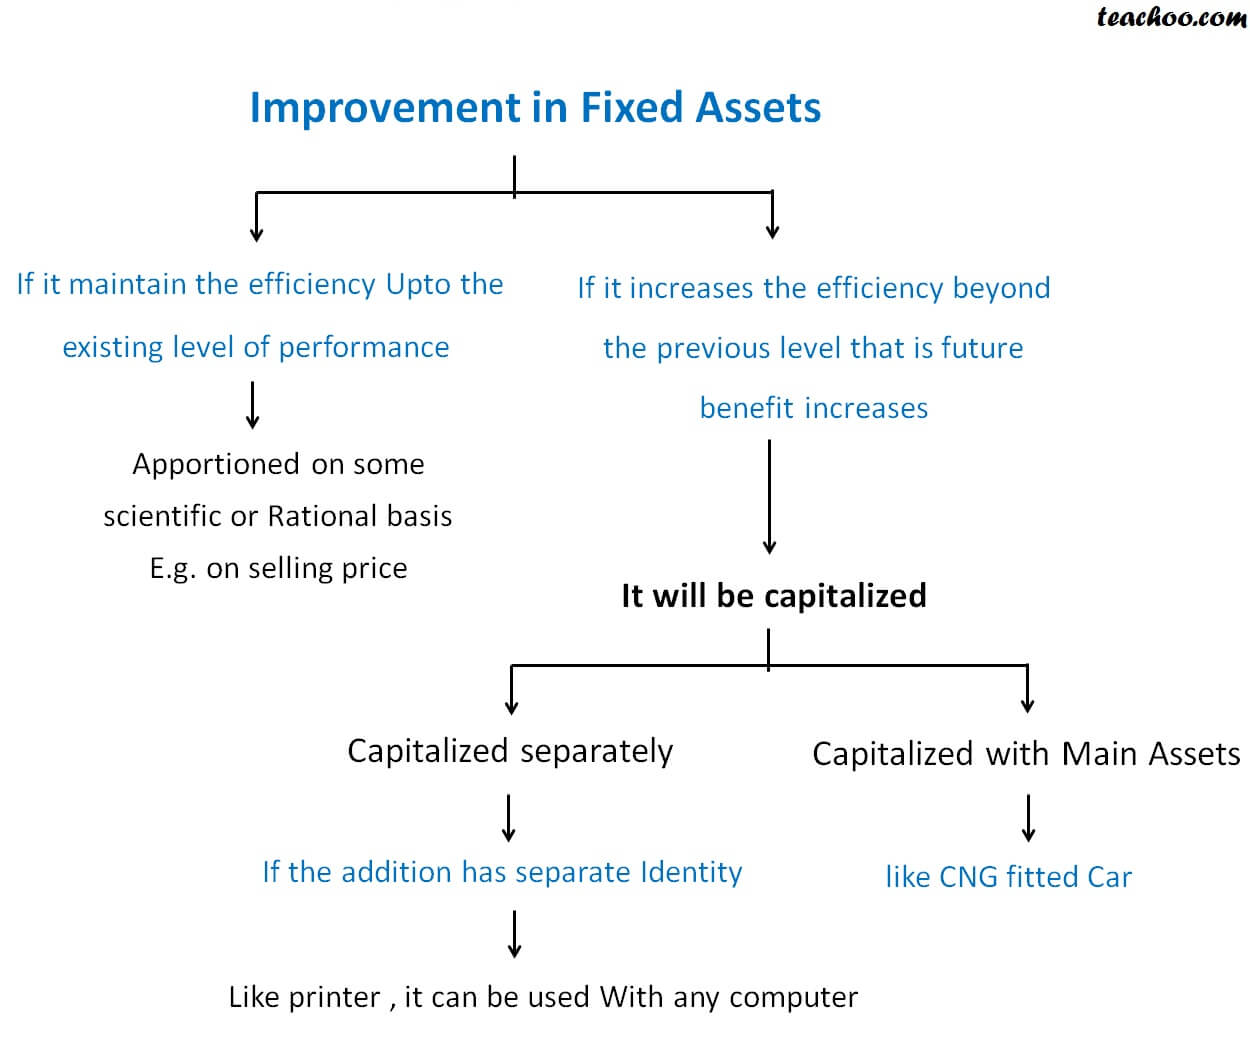 Improvement in Fixed Assets.jpg